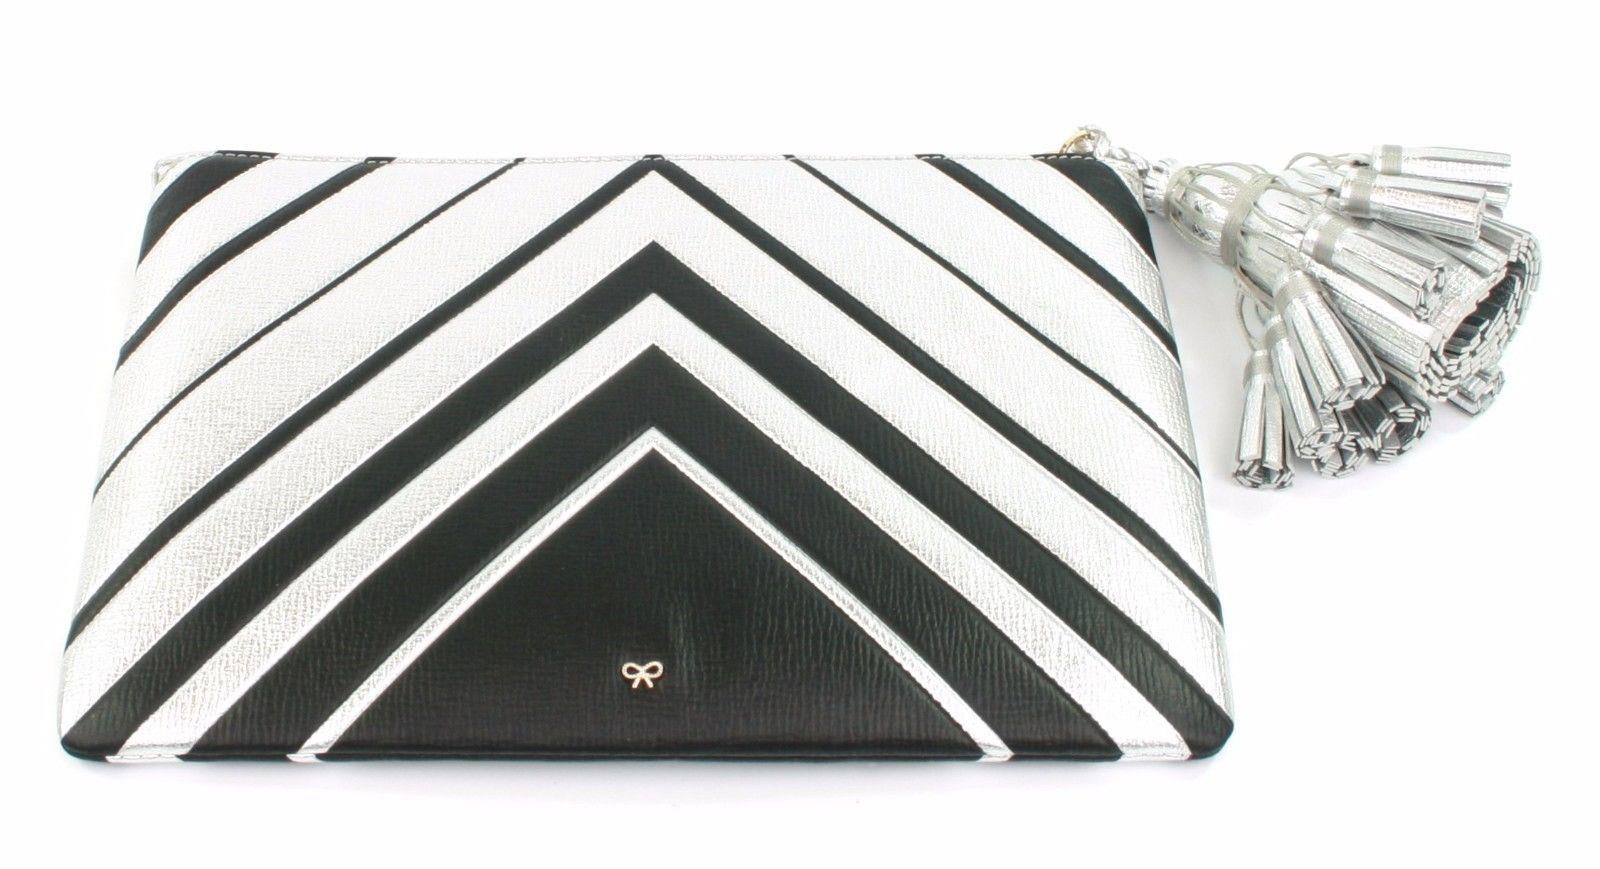 Anya Hindmarch Georgiana Metallic Clutch Bag Silver Chevron Large Tassel RRP£695